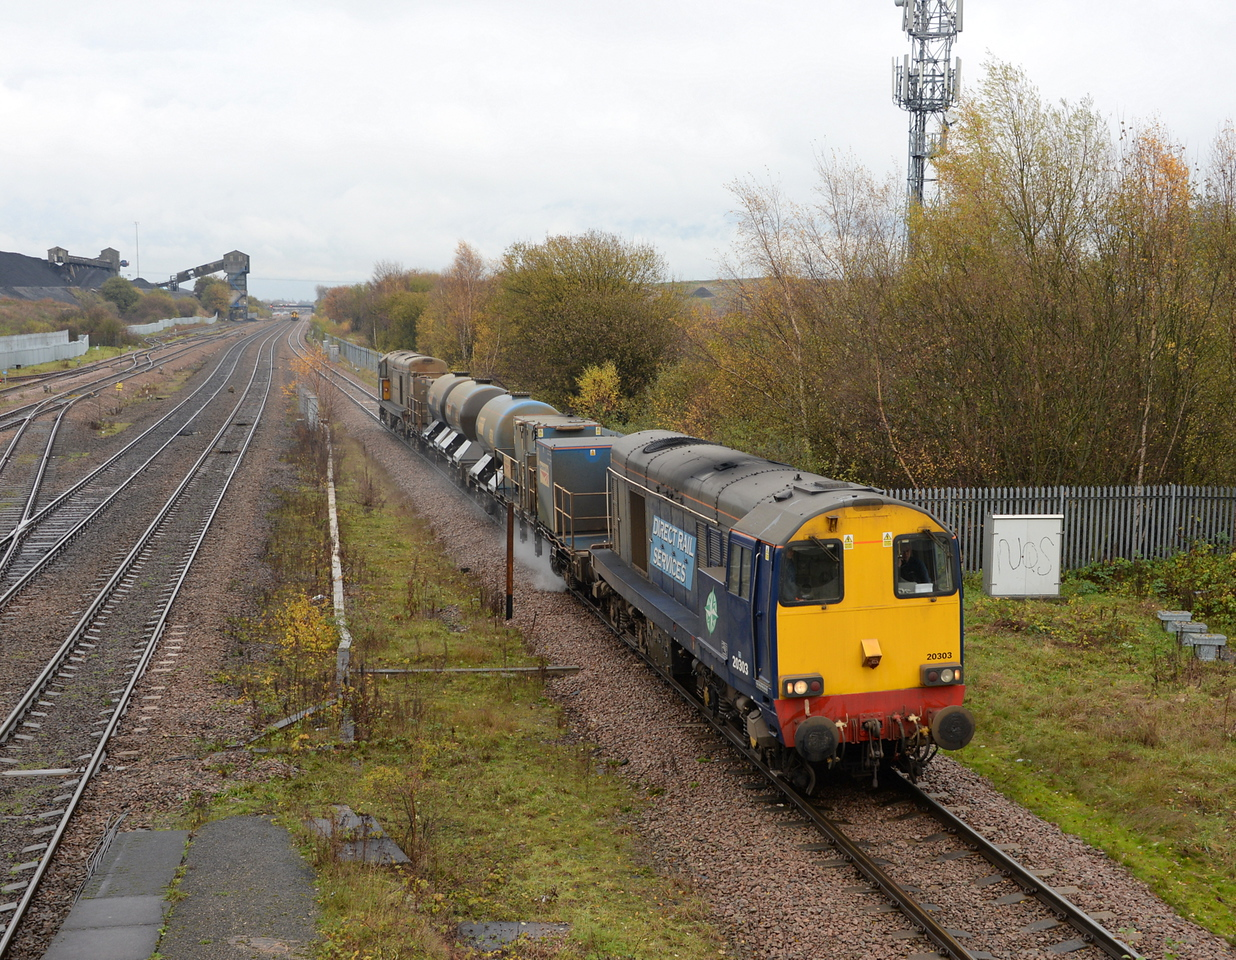 20303 and 20304, Hatfield & Stainforth. 14/11/14.